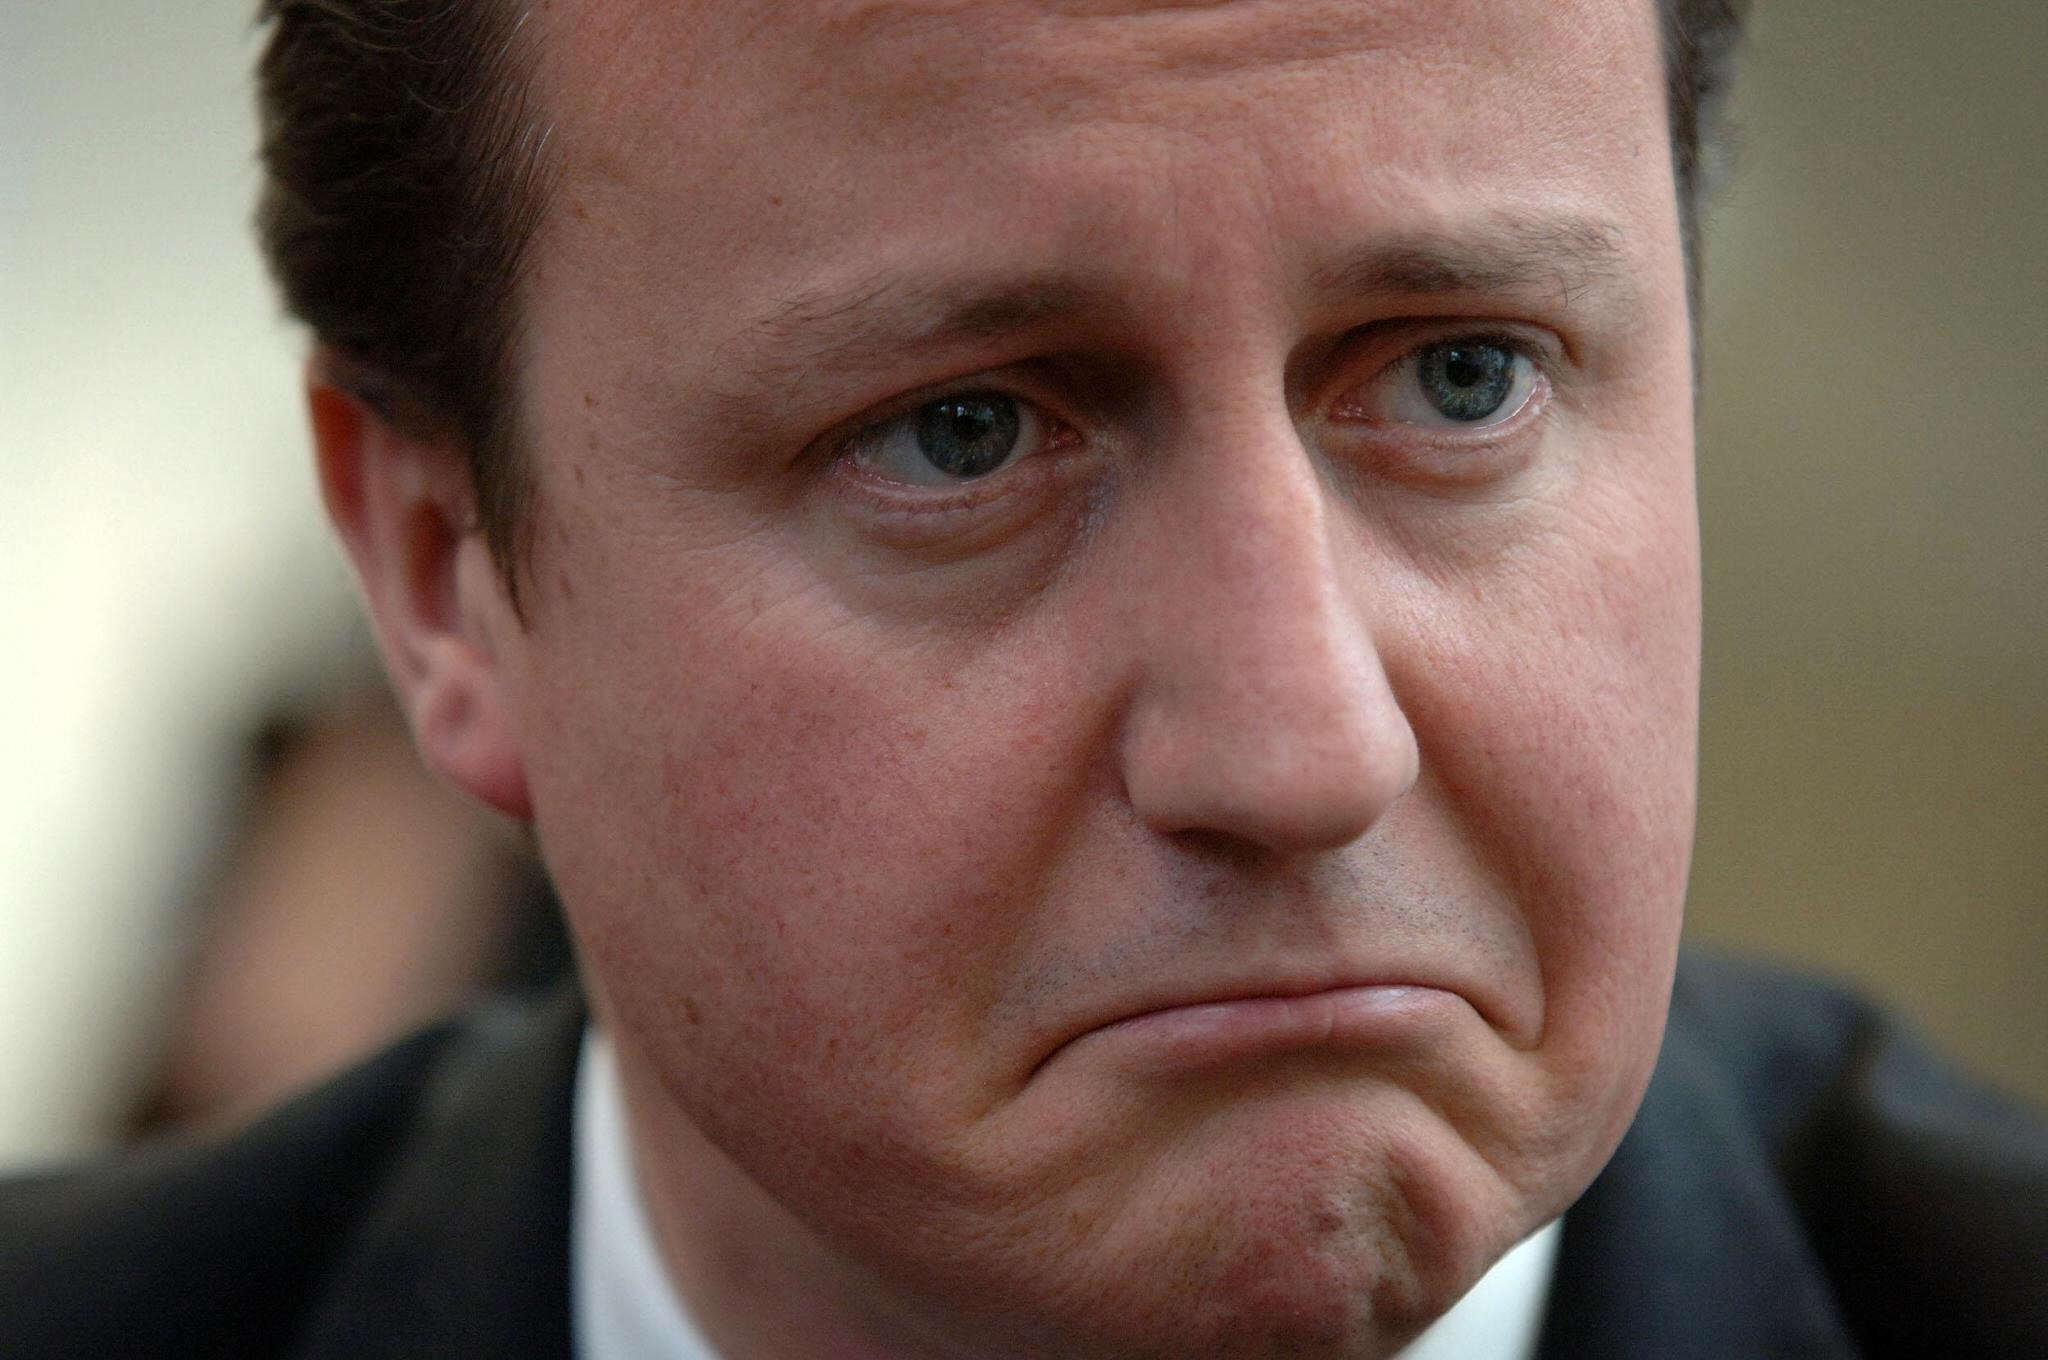 David Cameron Has Axed His Own Mums Job With Latest Tory Cuts PA 4276282